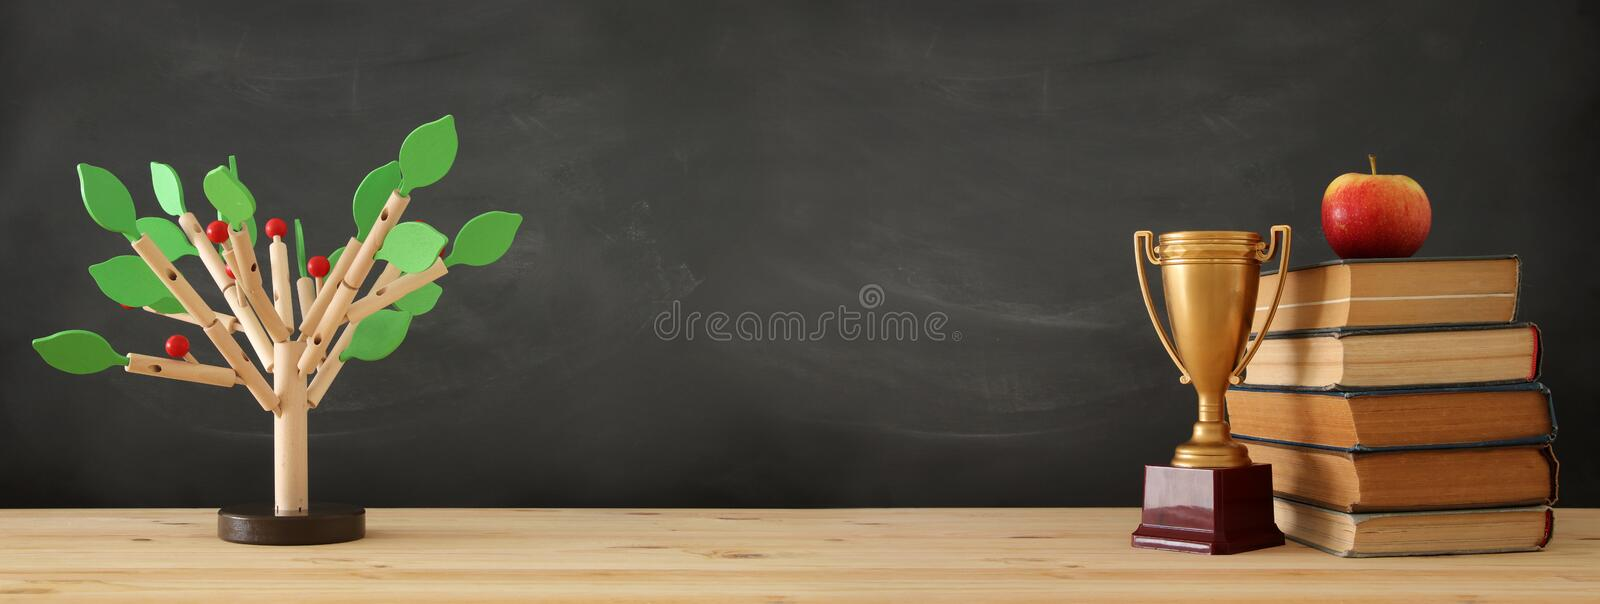 banner of open book, gold trophy and wooden tree puzzle over blackboard background. education and knowledge concept. stock photo